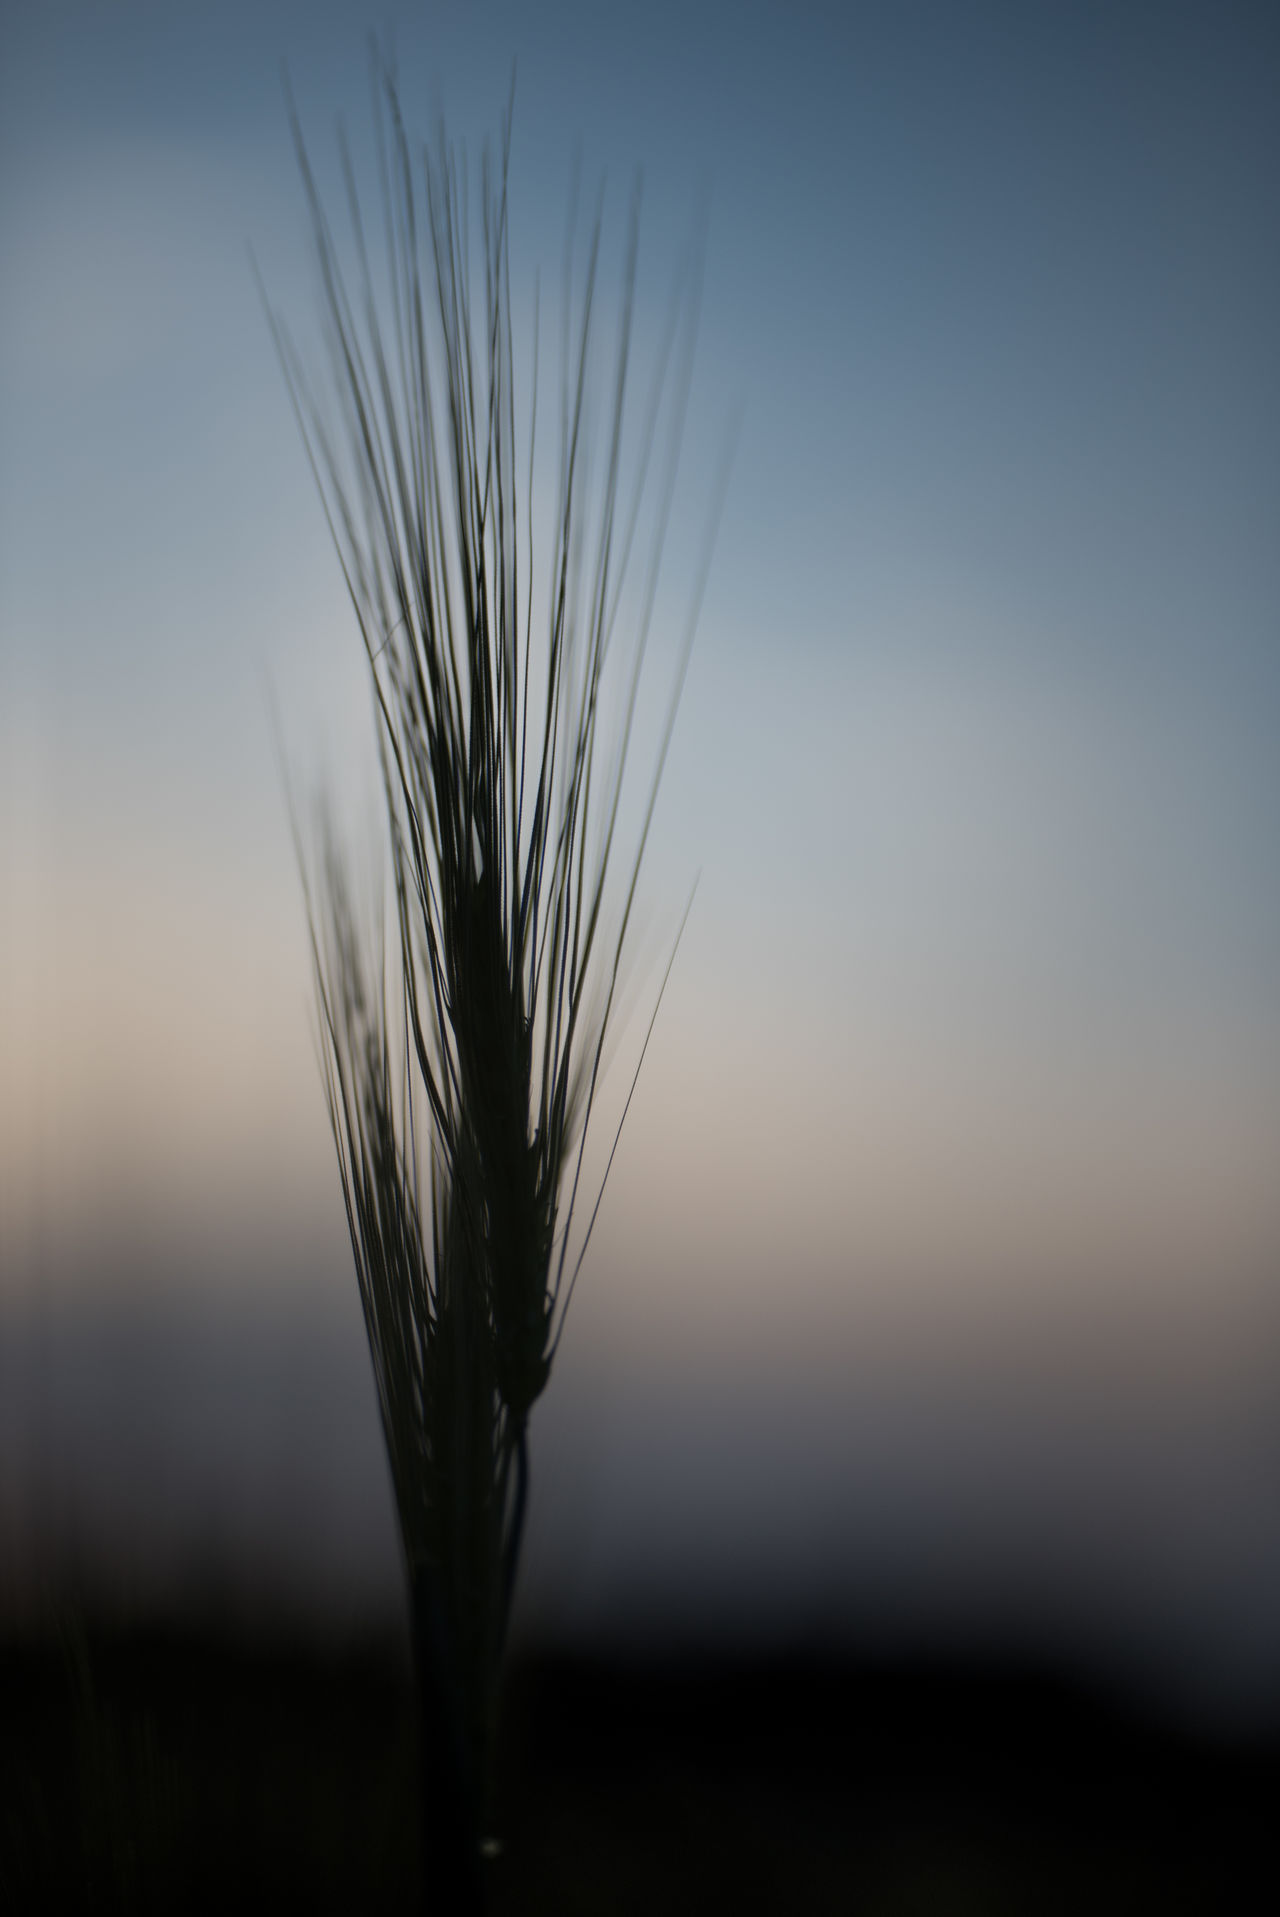 Evening walk along a barley field. Nice how the crop is reflecting the setting sun Backlight Barley Blue Hour Evening Light Selective Focus Spike Standing Out Sunset View From Below